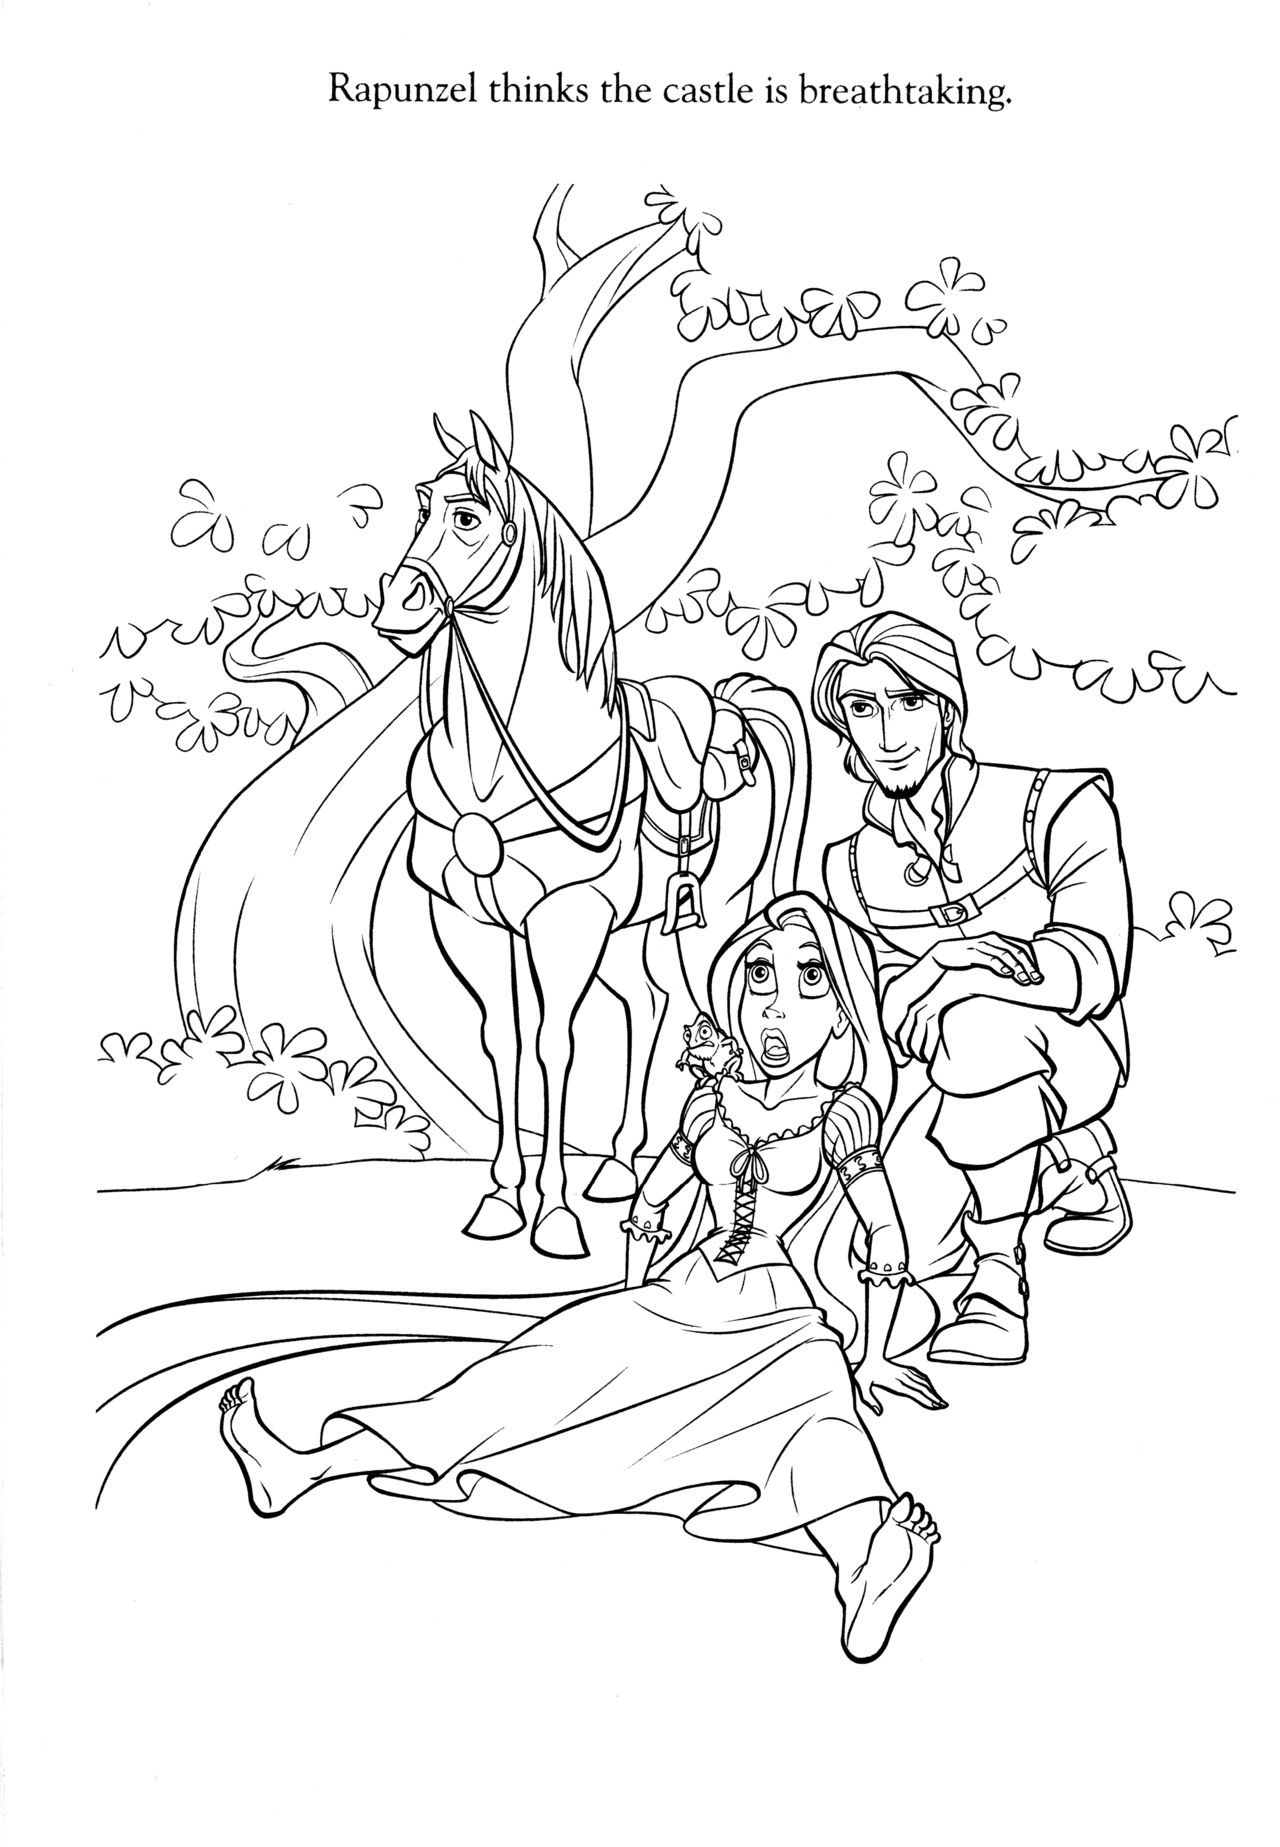 Disney Coloring Pages Tangled Coloring Pages Disney Princess Coloring Pages Rapunzel Coloring Pages